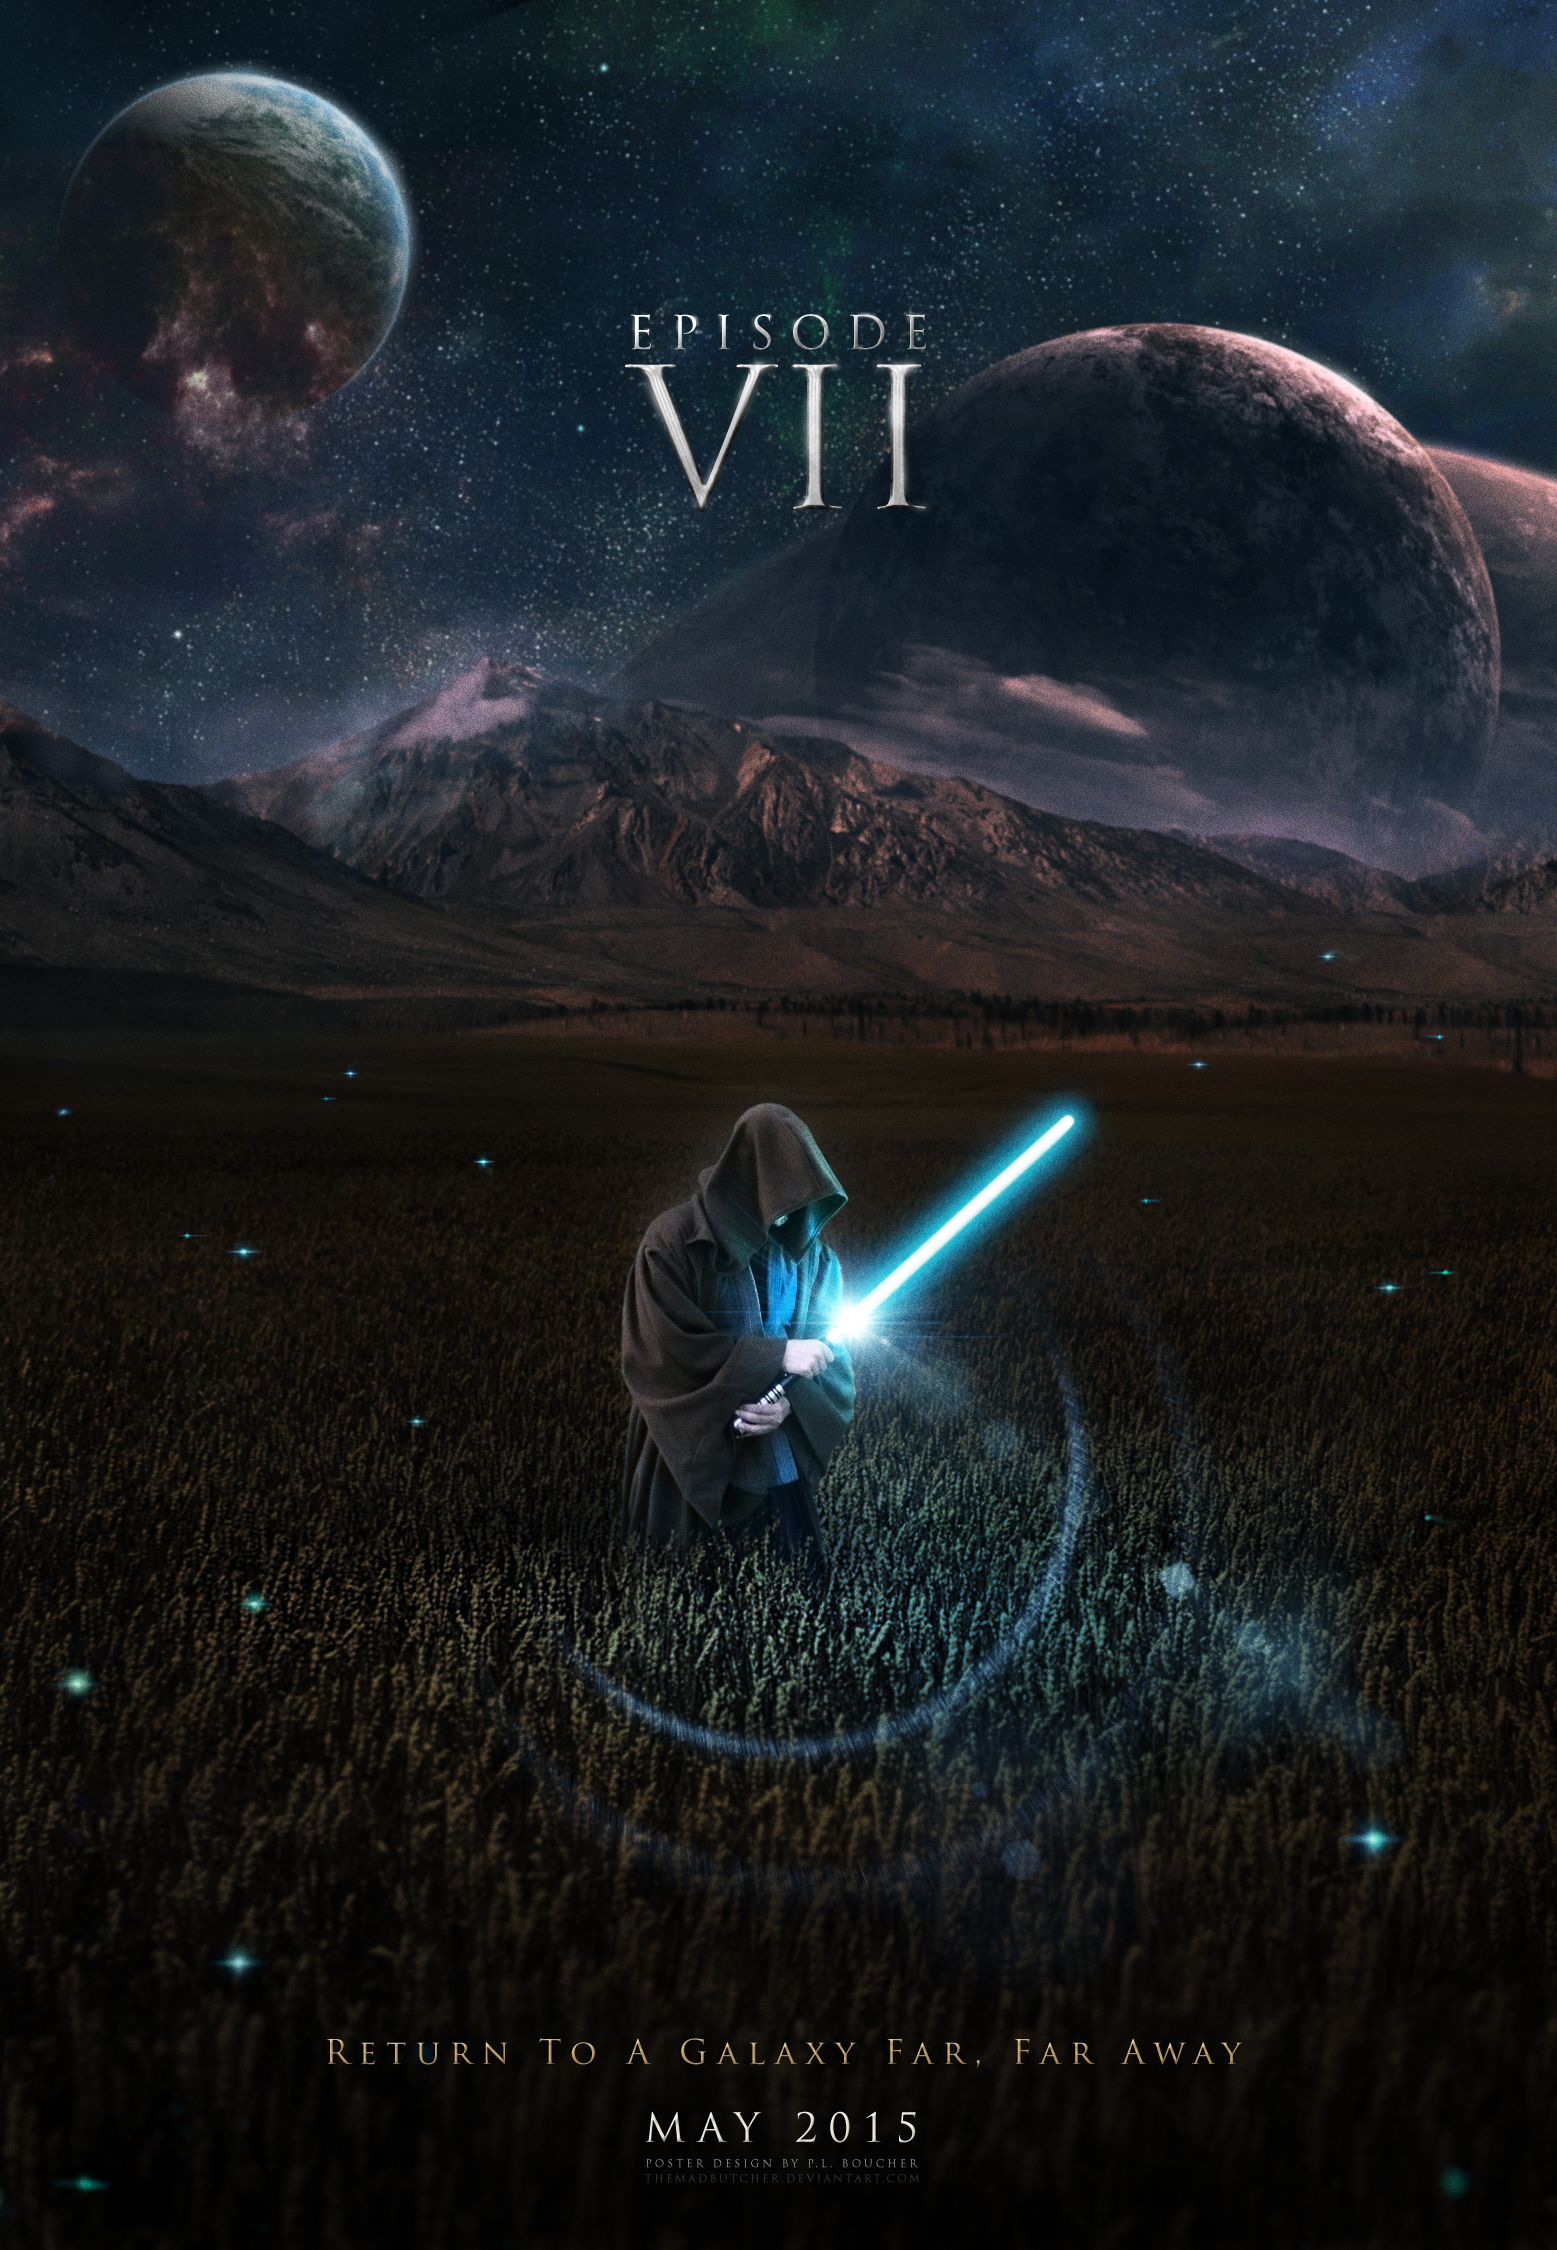 star_wars_episode_vii_teaser_by_themadbutcher-d5sdpq9.jpg